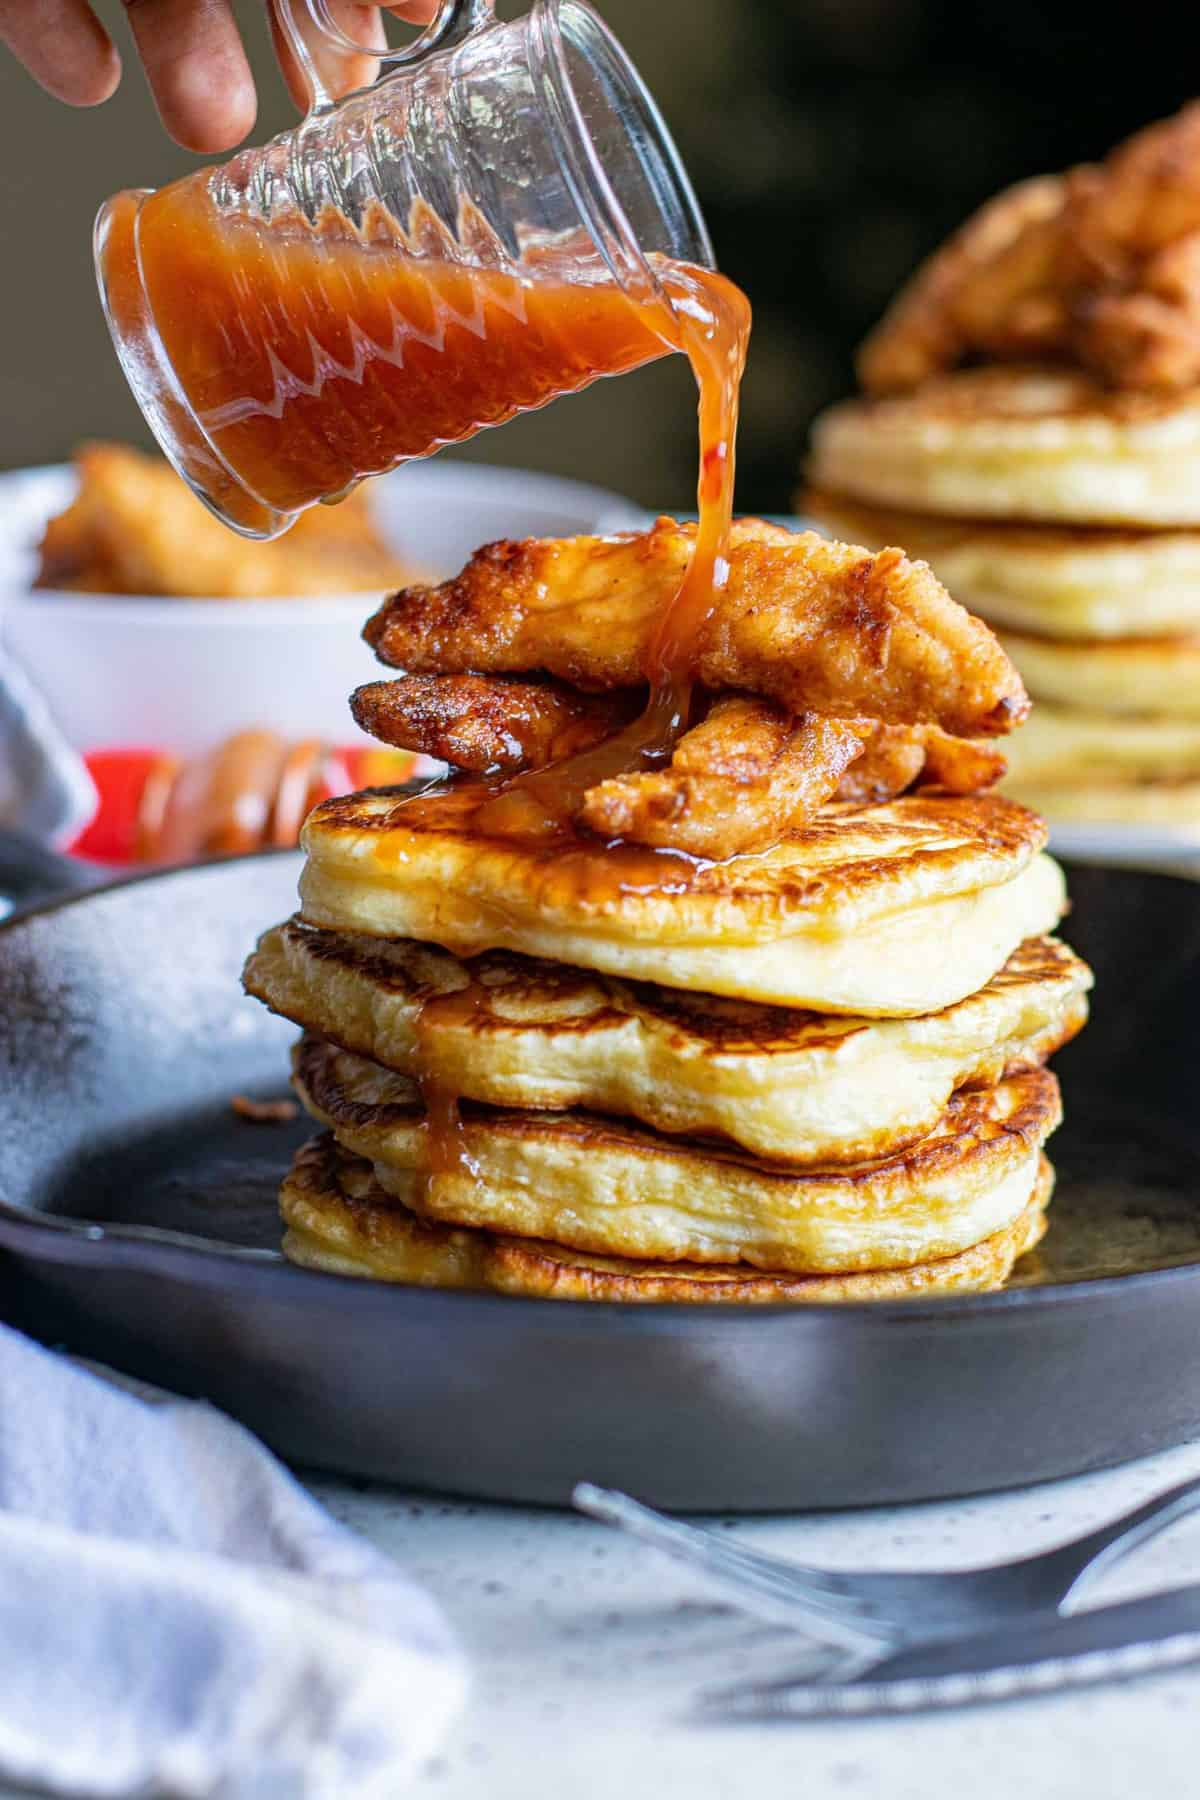 Red sauce being poured over a stack of pancakes and crispy chicken.